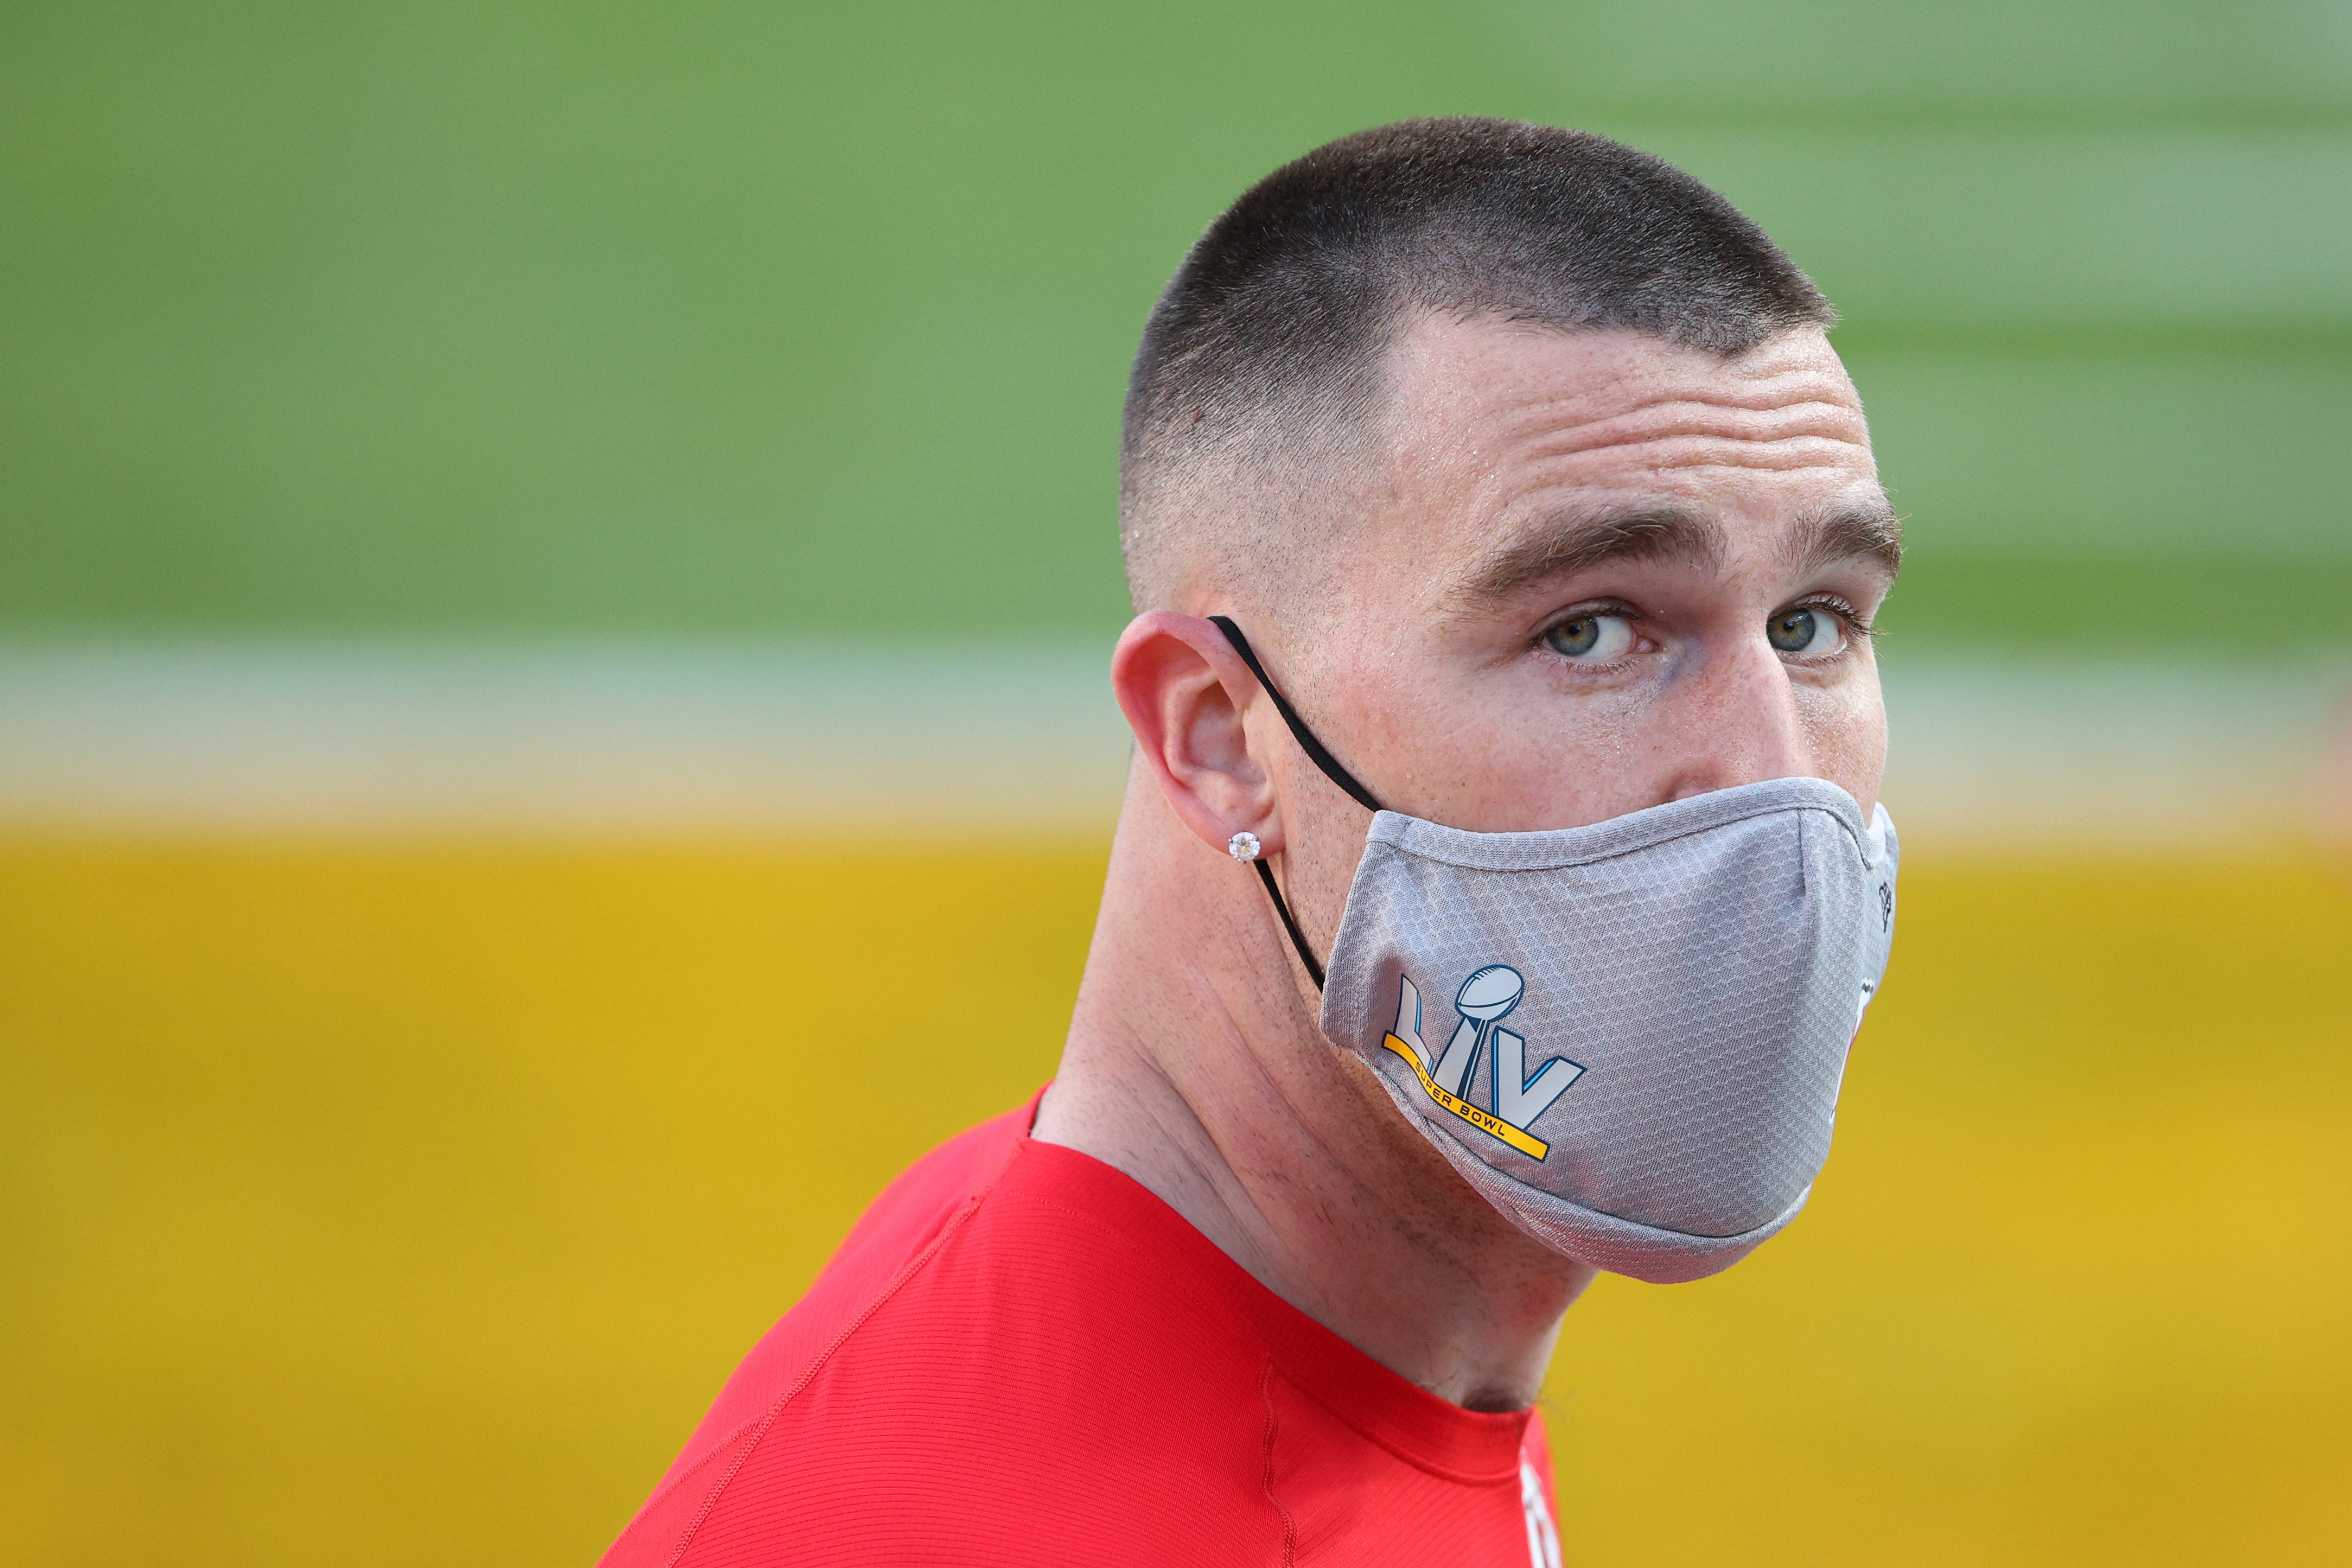 Travis Kelce was hesitant about vaccination. Now he's encouraging everyone to get it